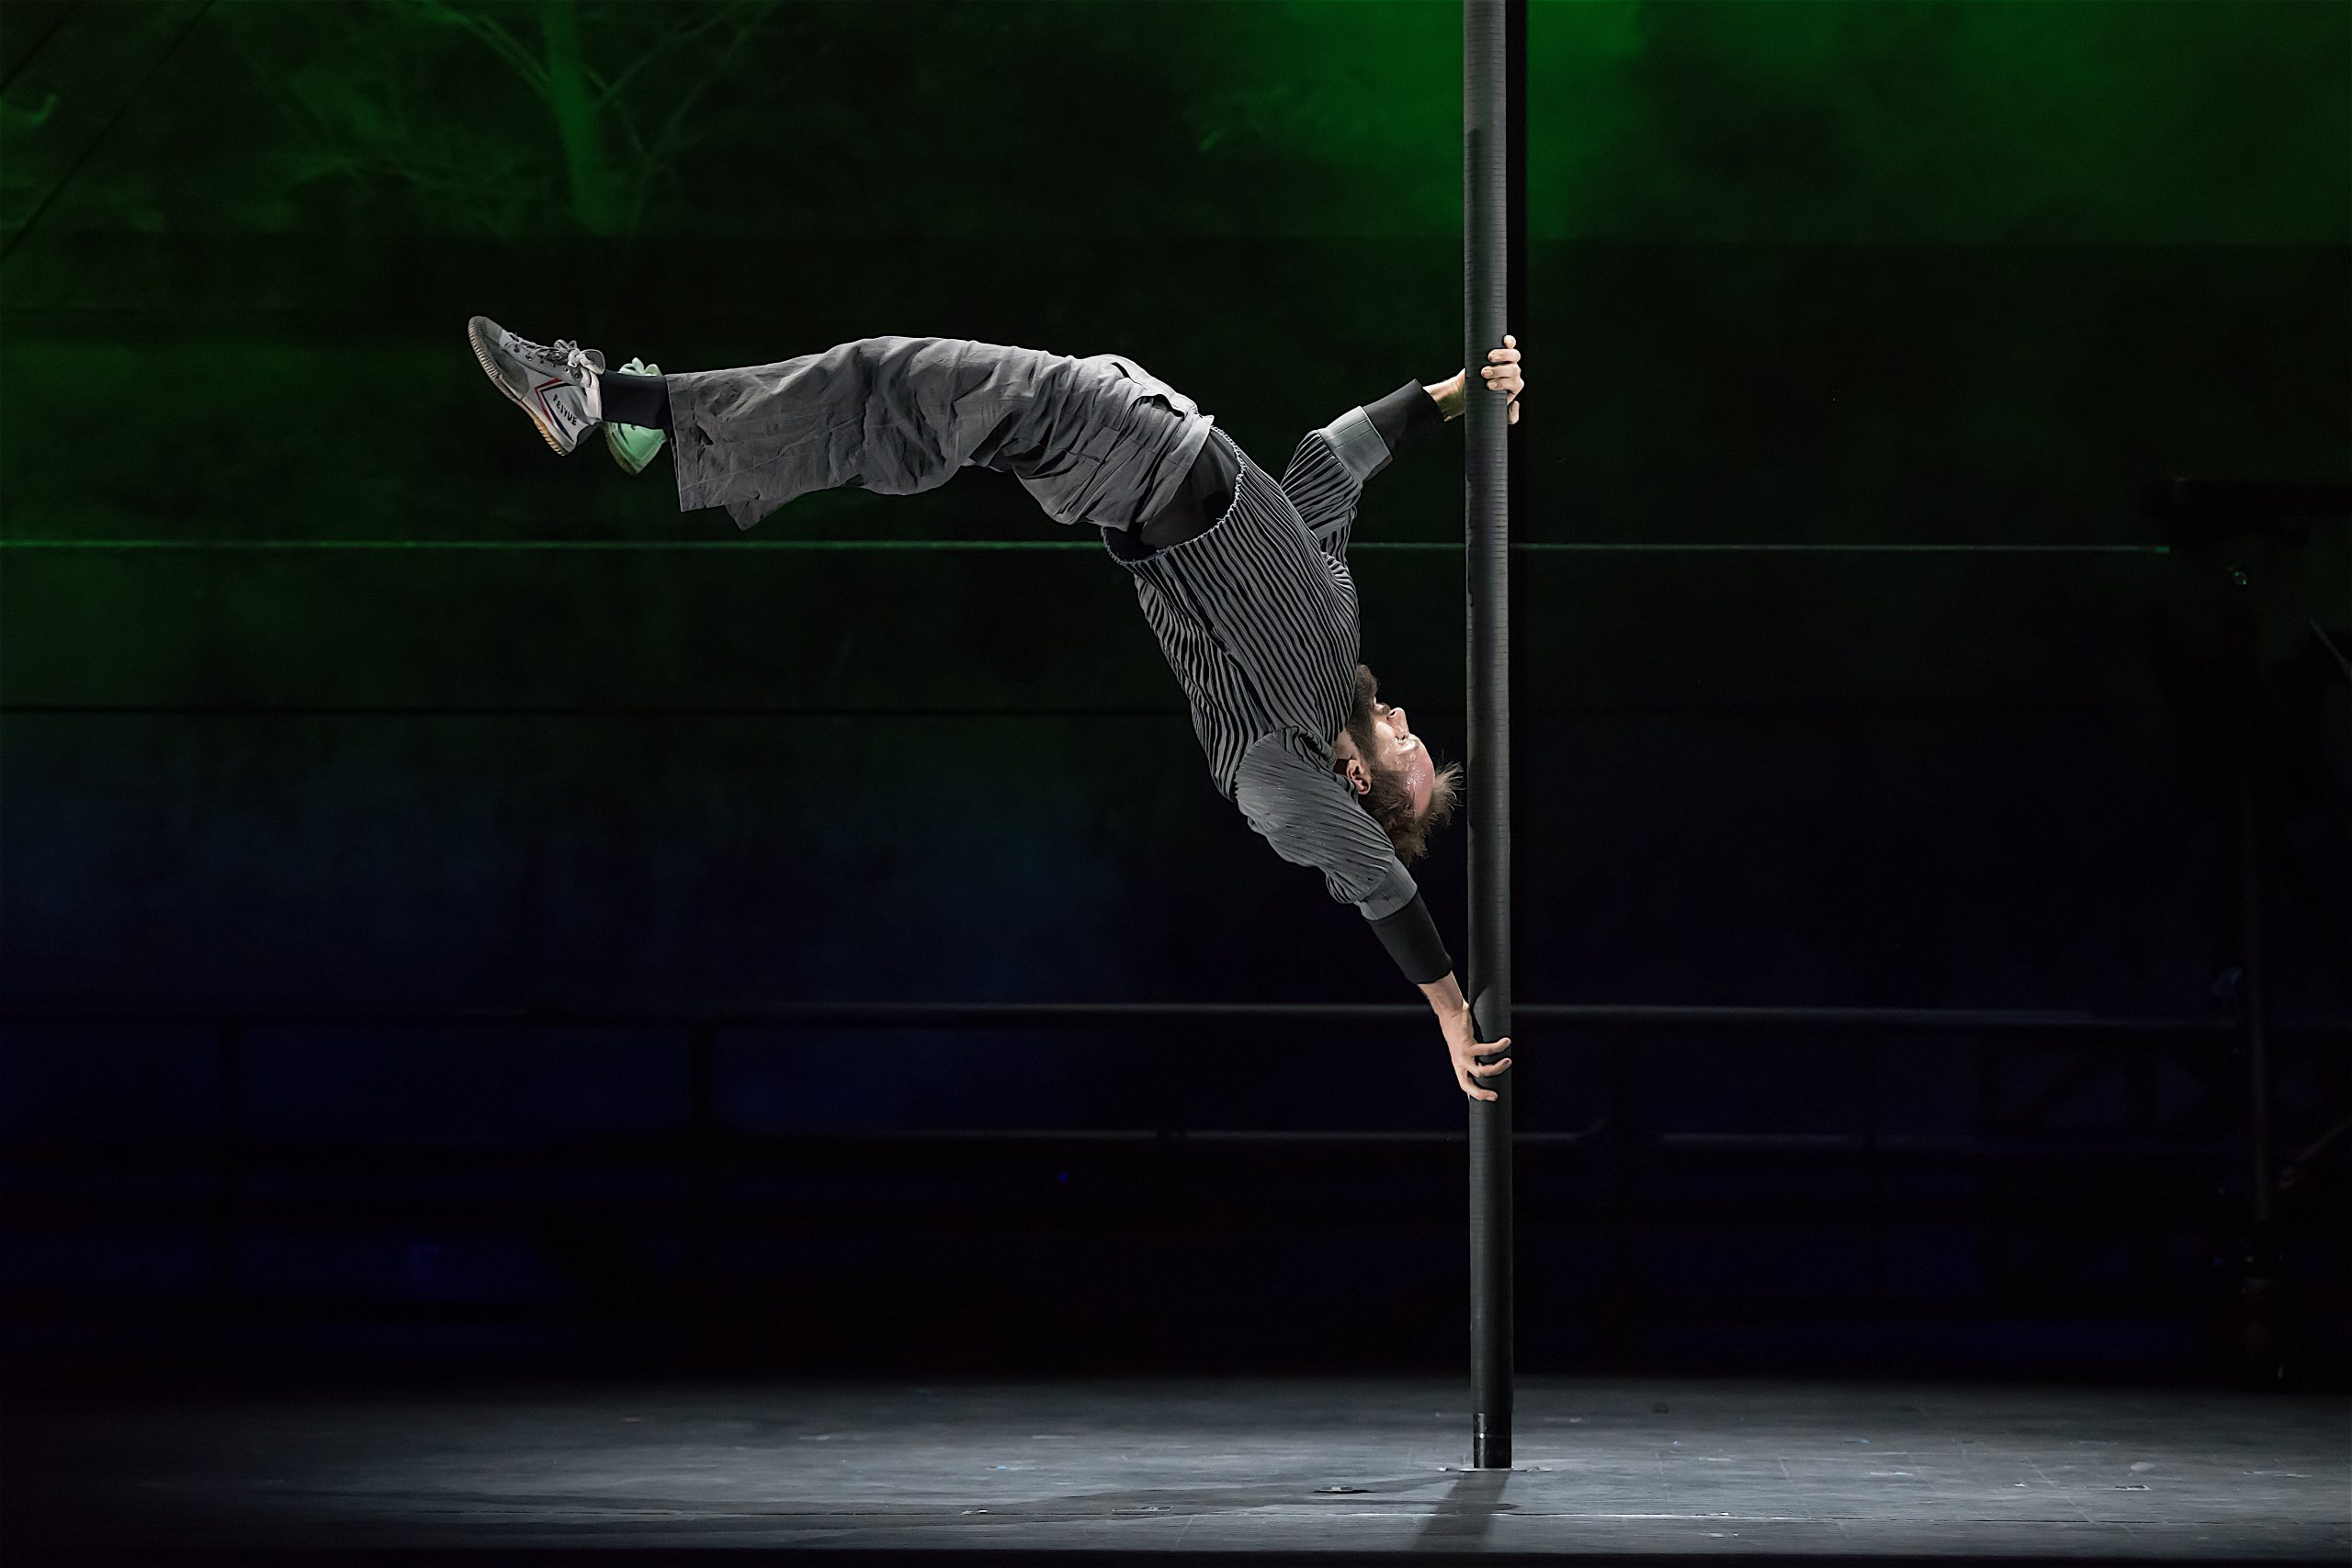 The 7 Fingers performs Passagers. A male circus artist demonstrates his strength and flexibility as he strikes a pose horizontally, mid-backflip, with both hands holding onto a vertical pole.